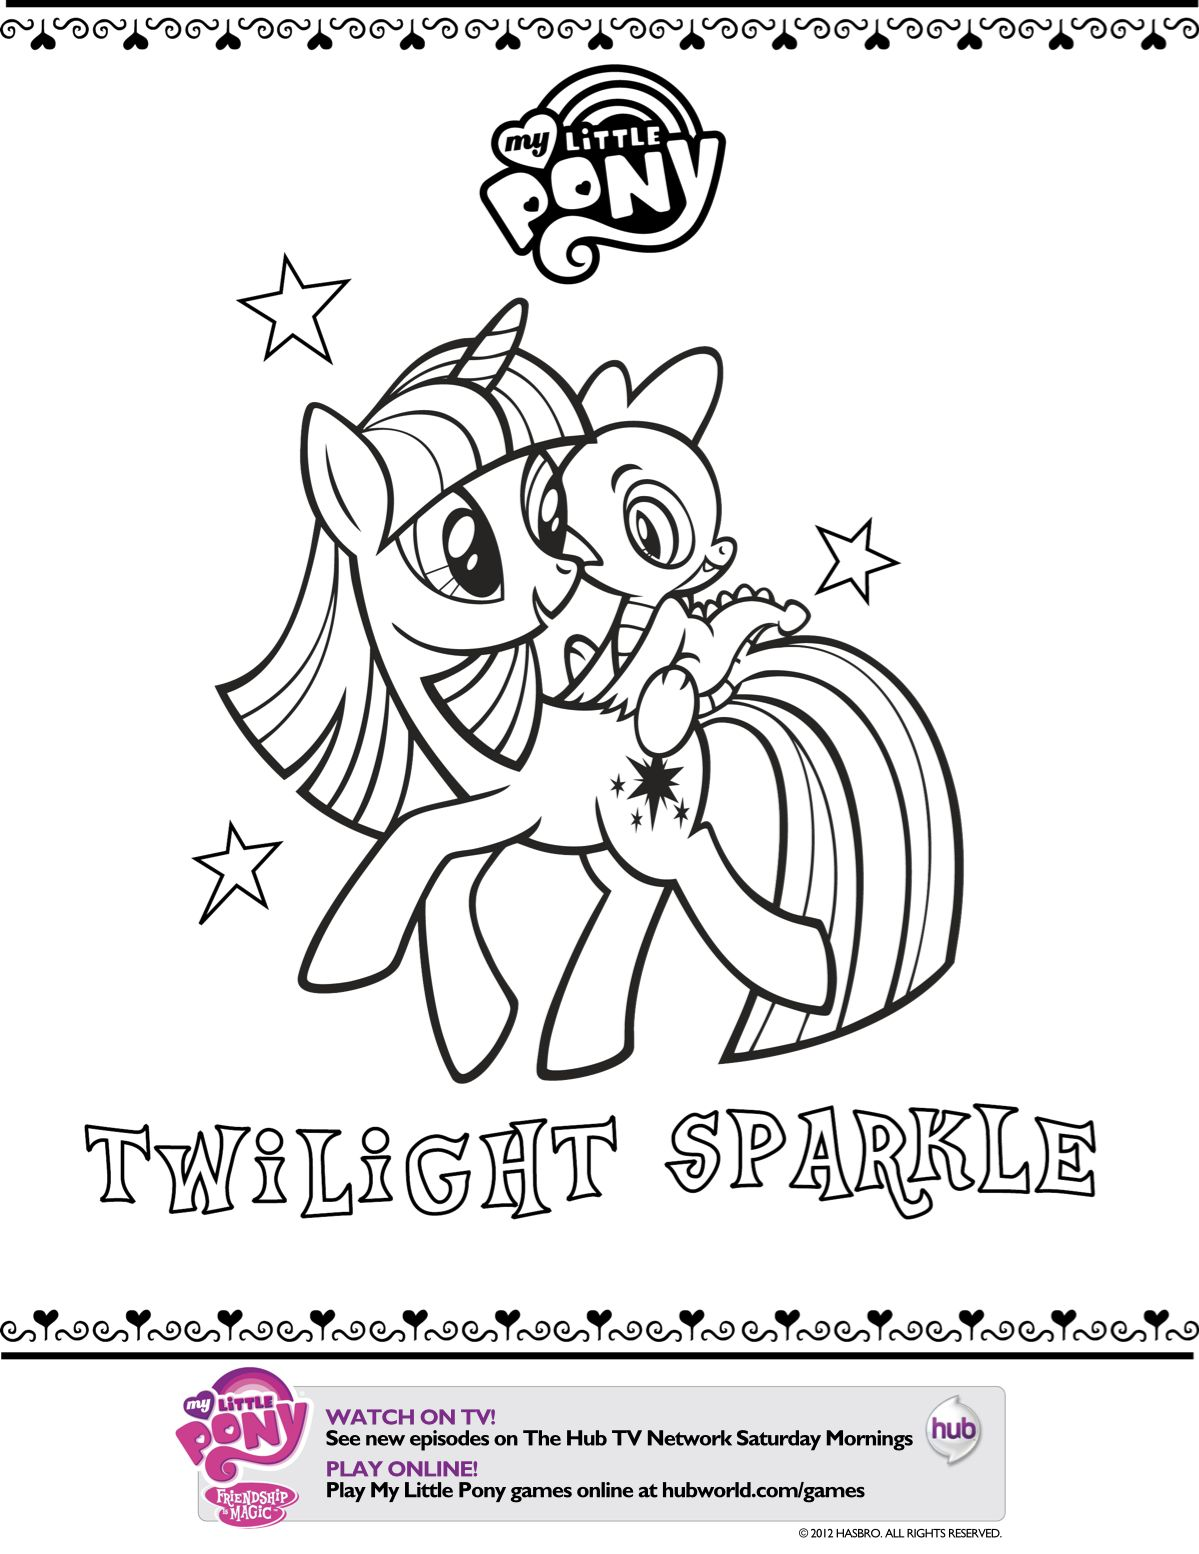 My Little Pony Twilight Sparkle Printable Coloring Page My